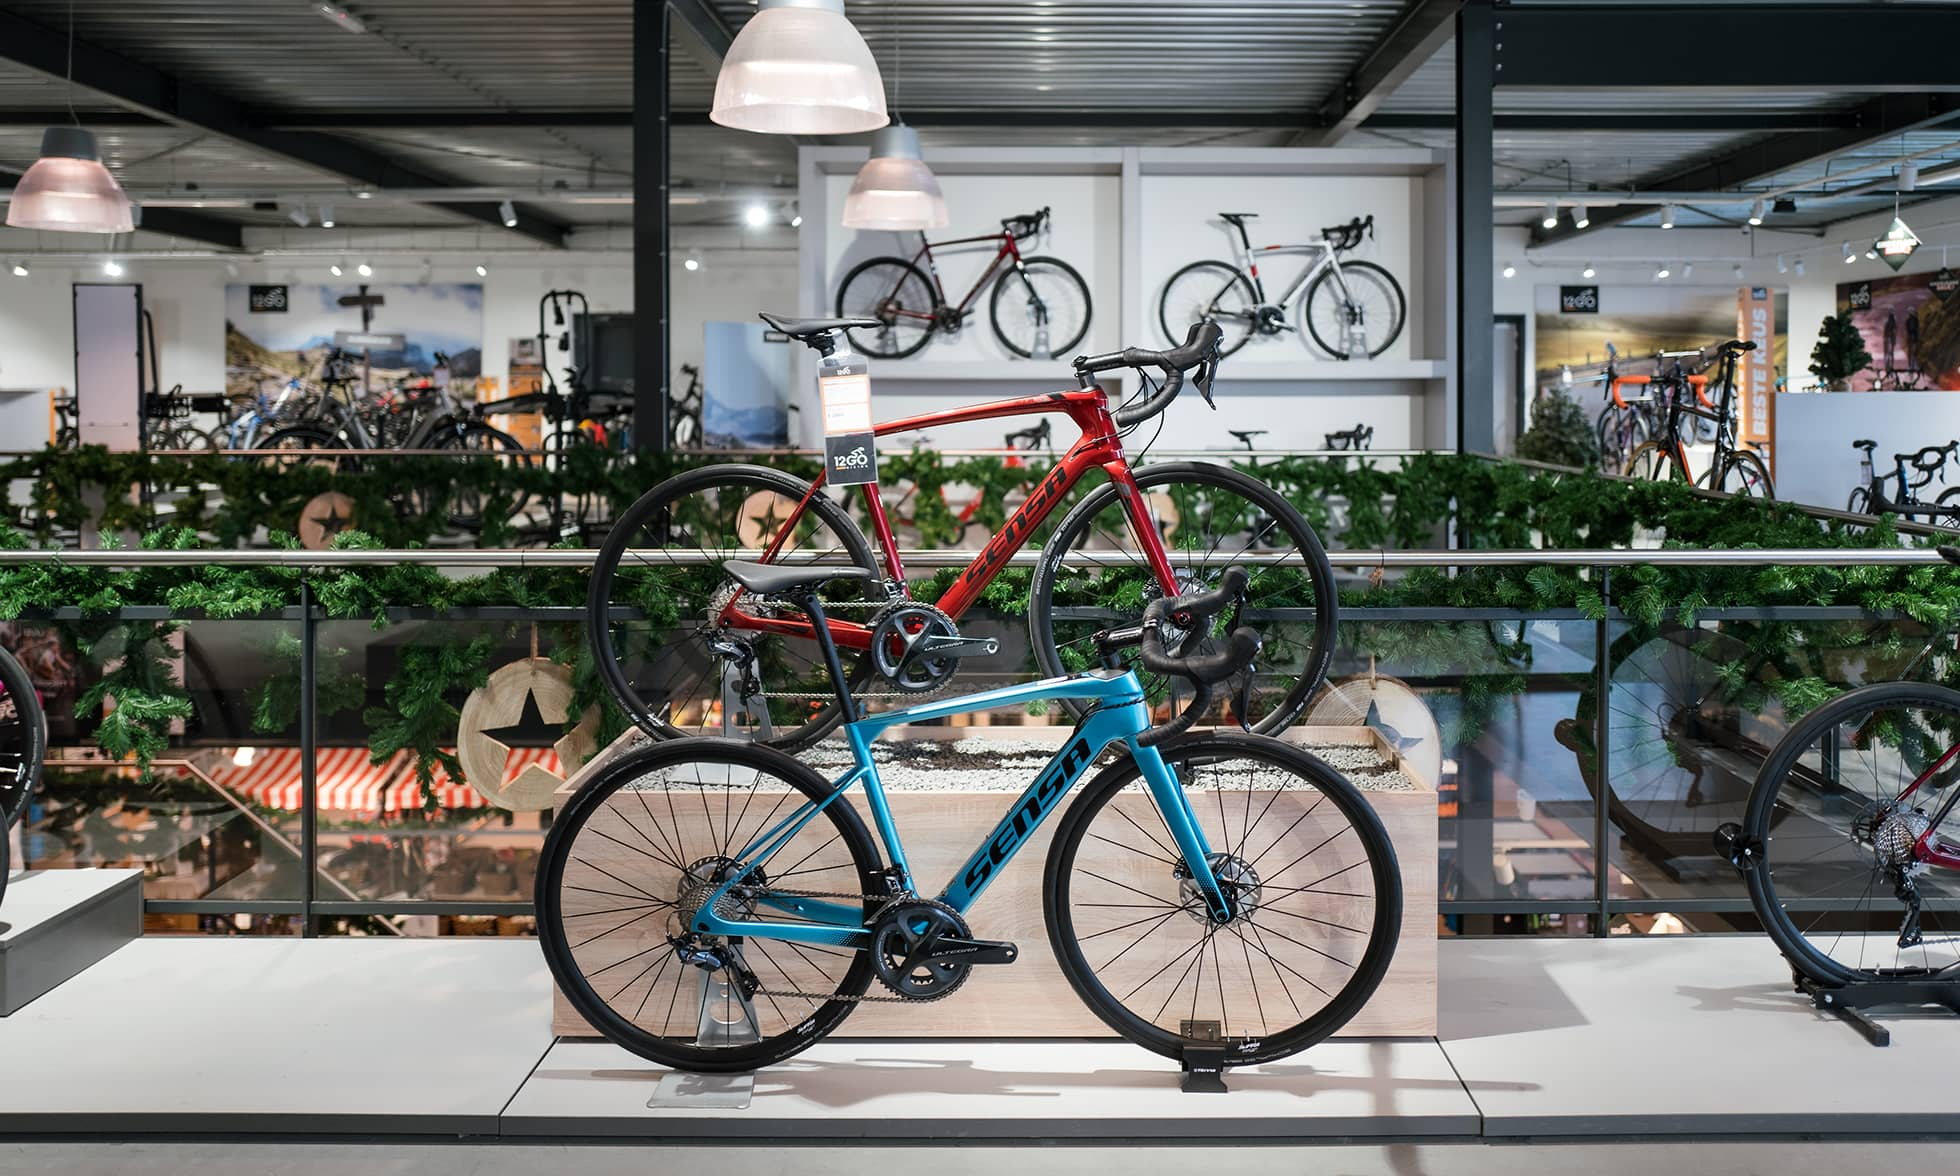 Blue and red racing bikes in the 12GO Biking showroom